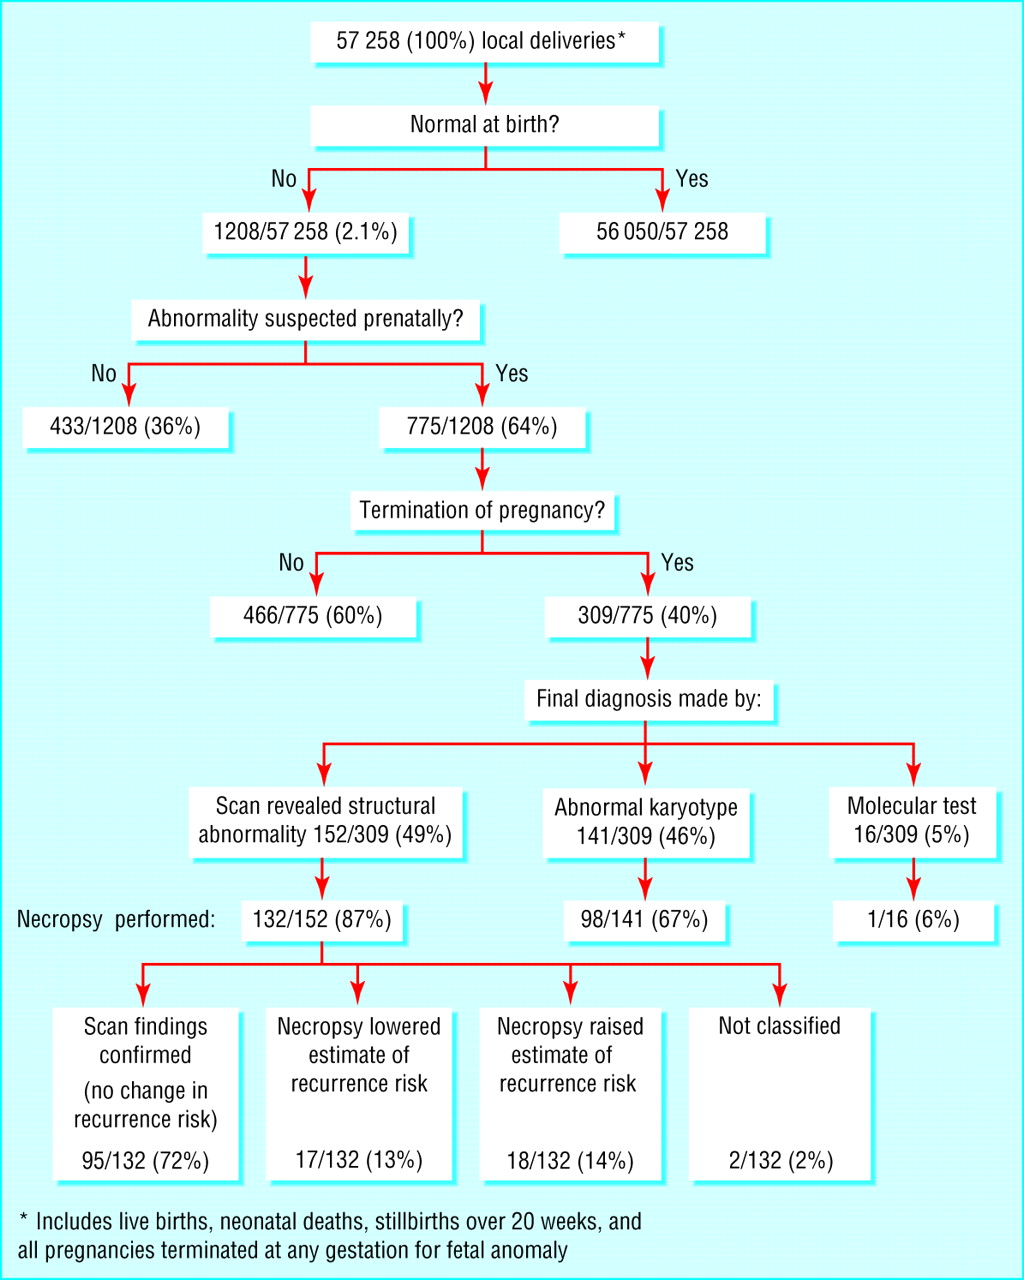 Late termination of pregnancy